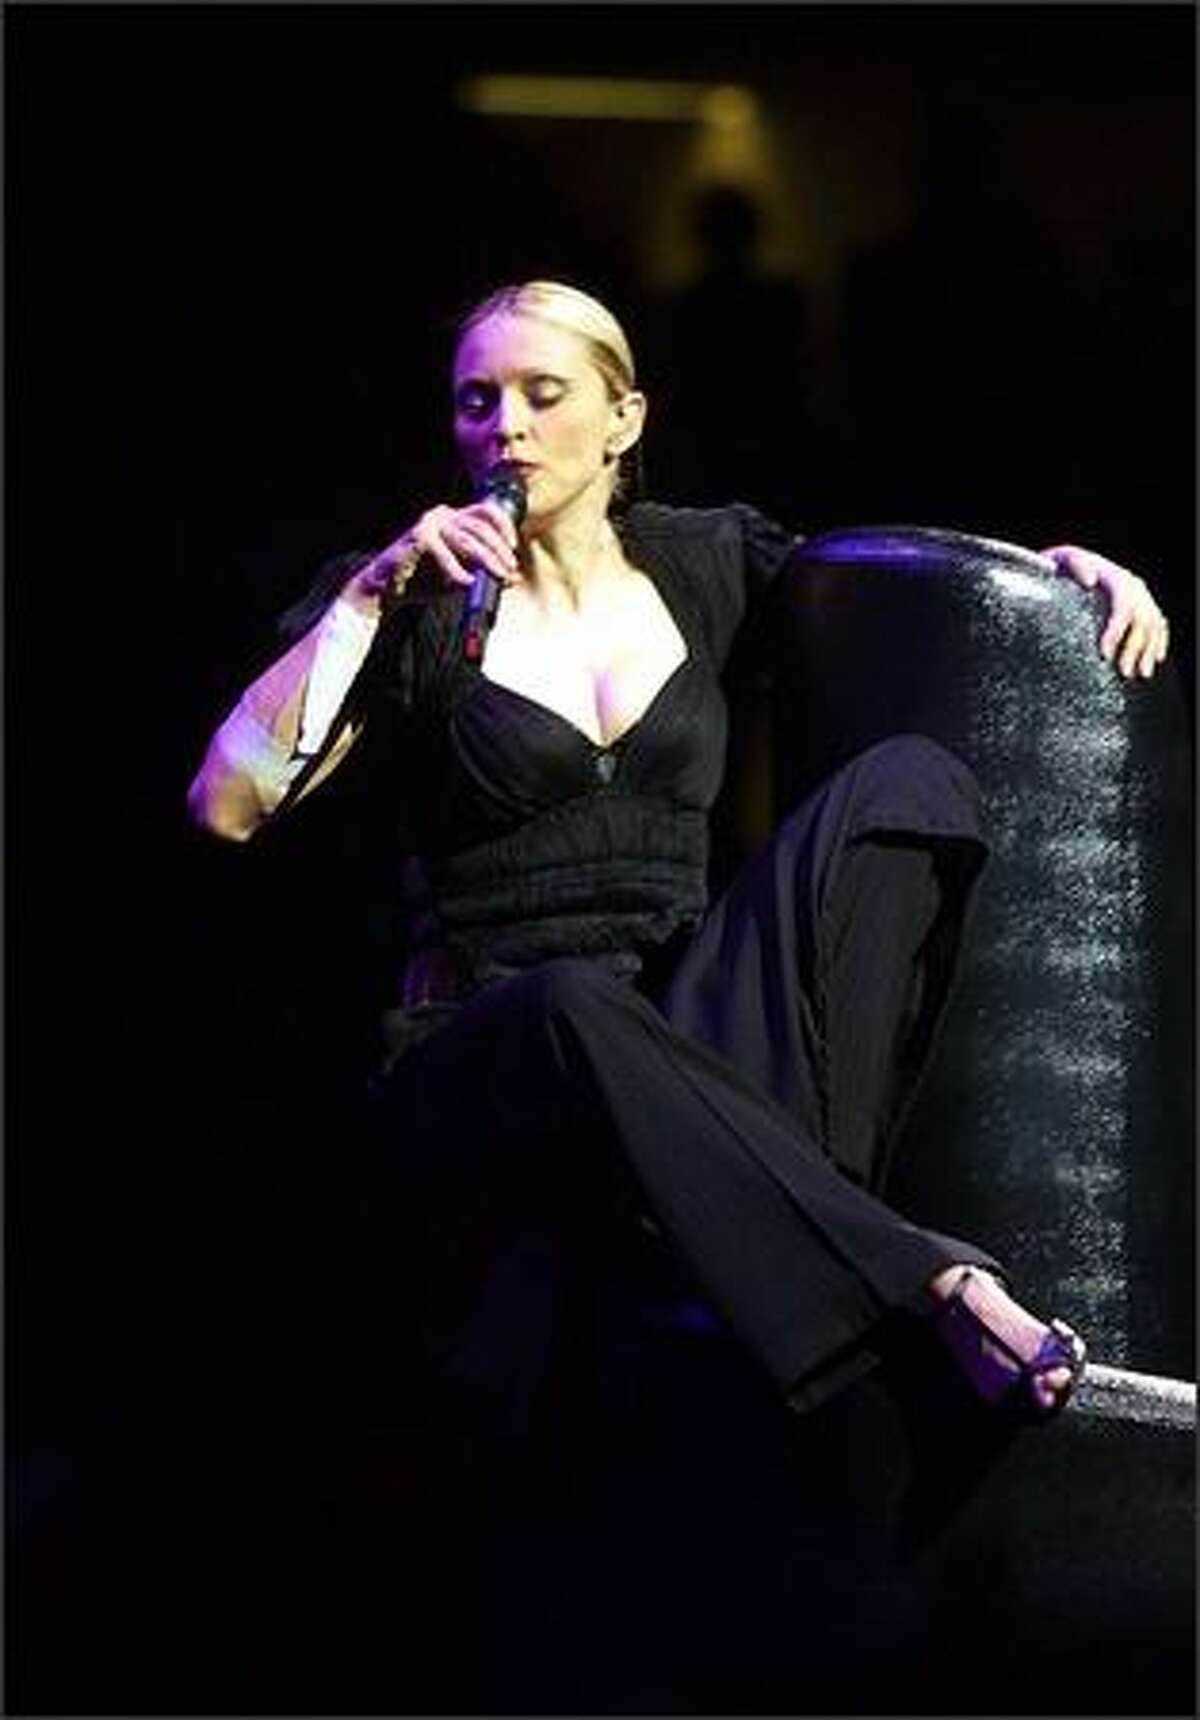 Madonna performs in concert July 25, 2001 at Madison Square Garden in New York.